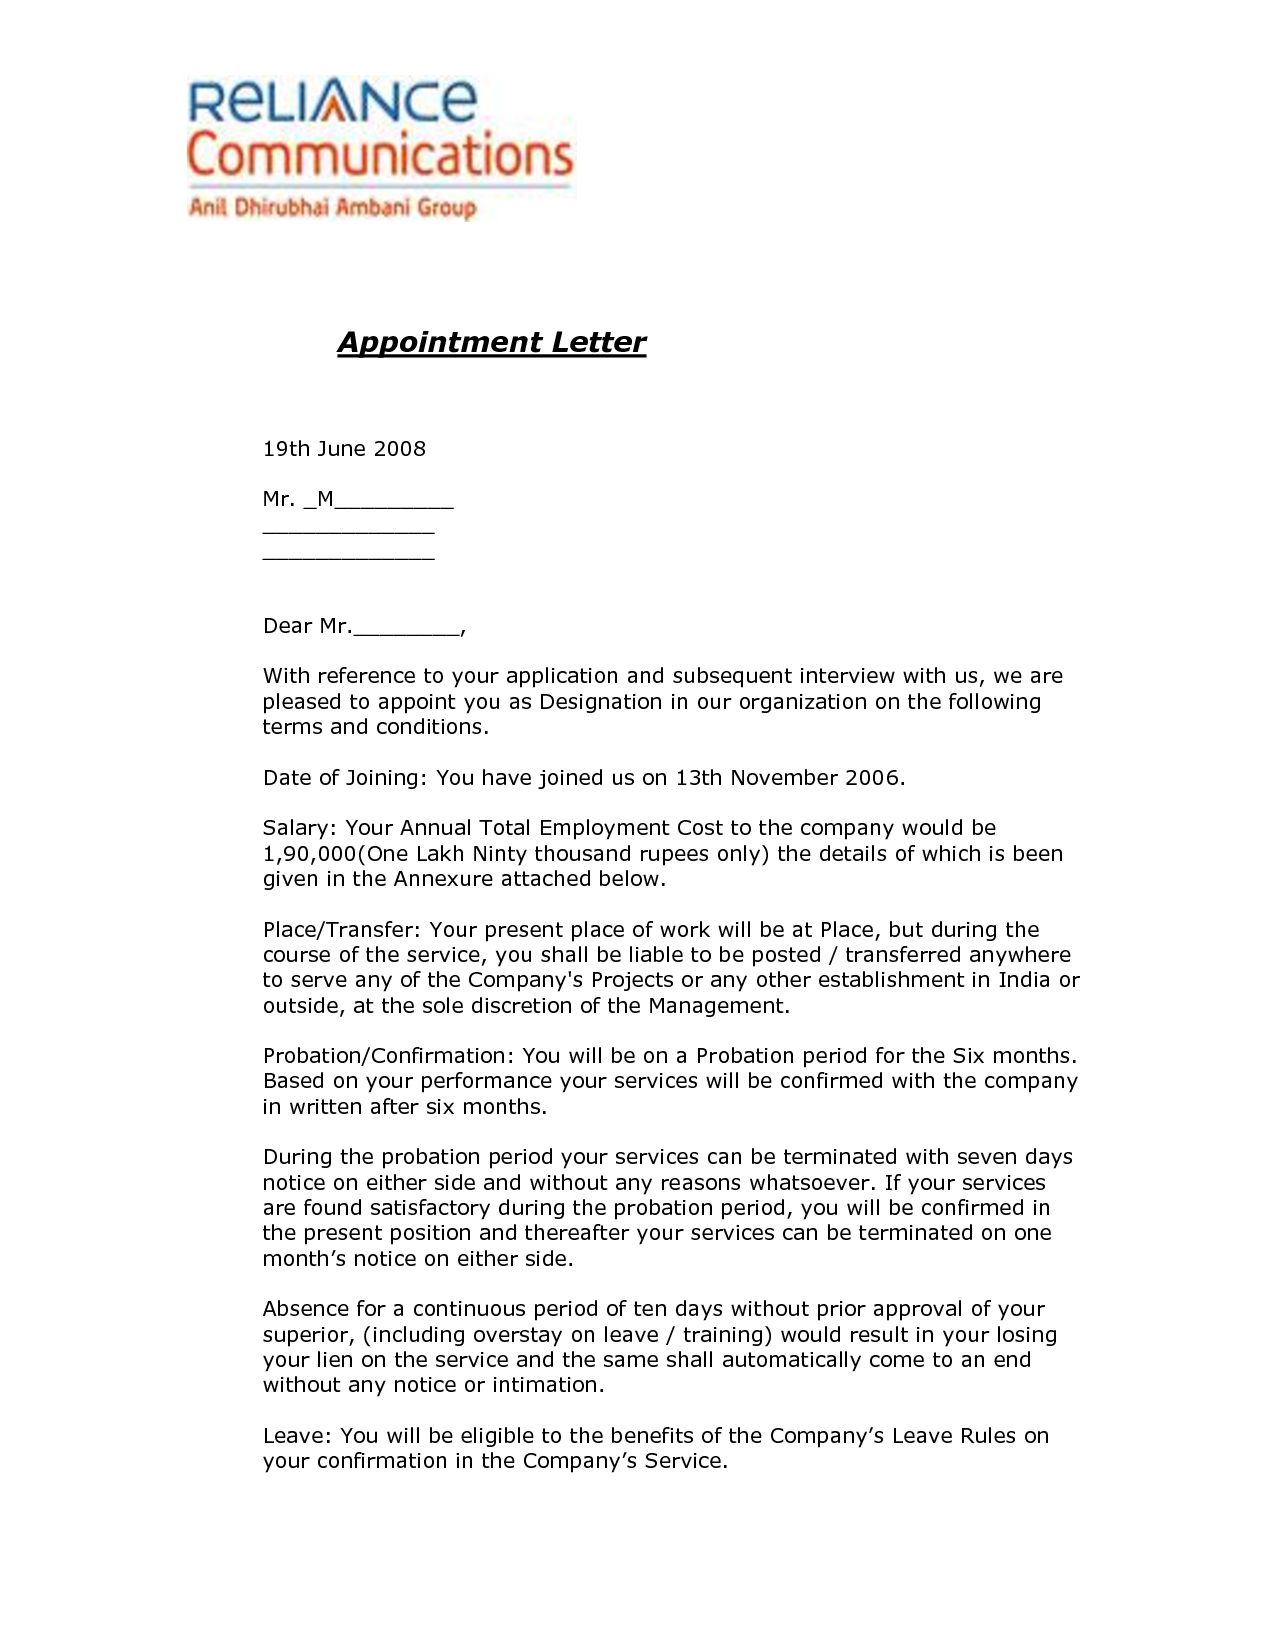 Joining letter format for offer letter format legal offer letter format altavistaventures Images